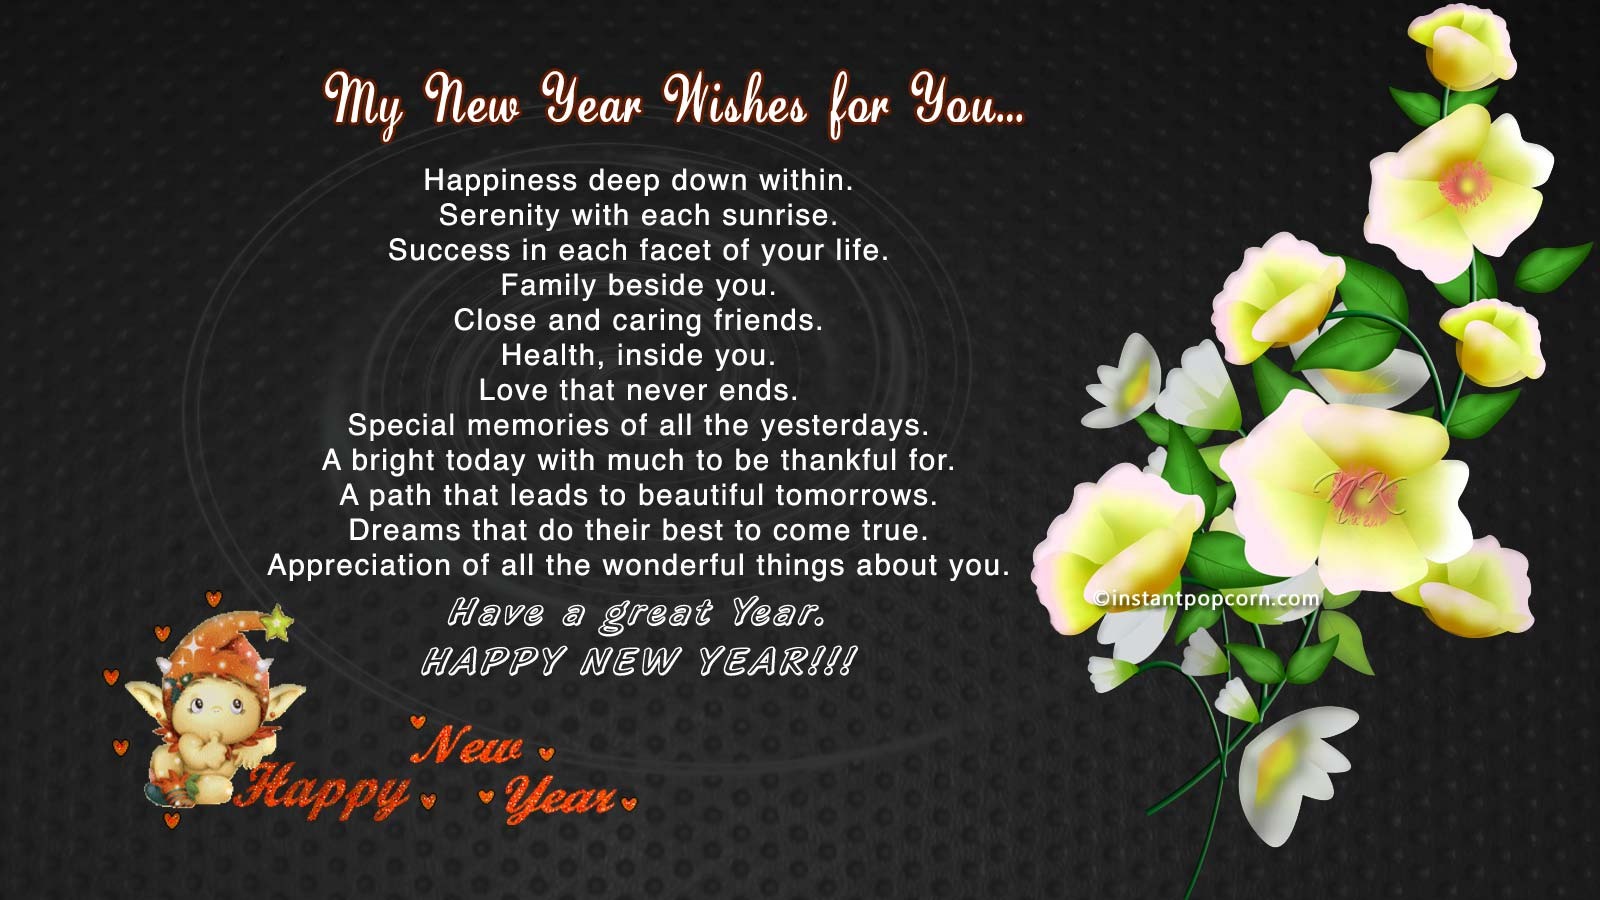 New Year Poems Happy New Year 2014 Wishes Quotes: Happy-new-year-wishes-poem_instantpopcorn.org_01